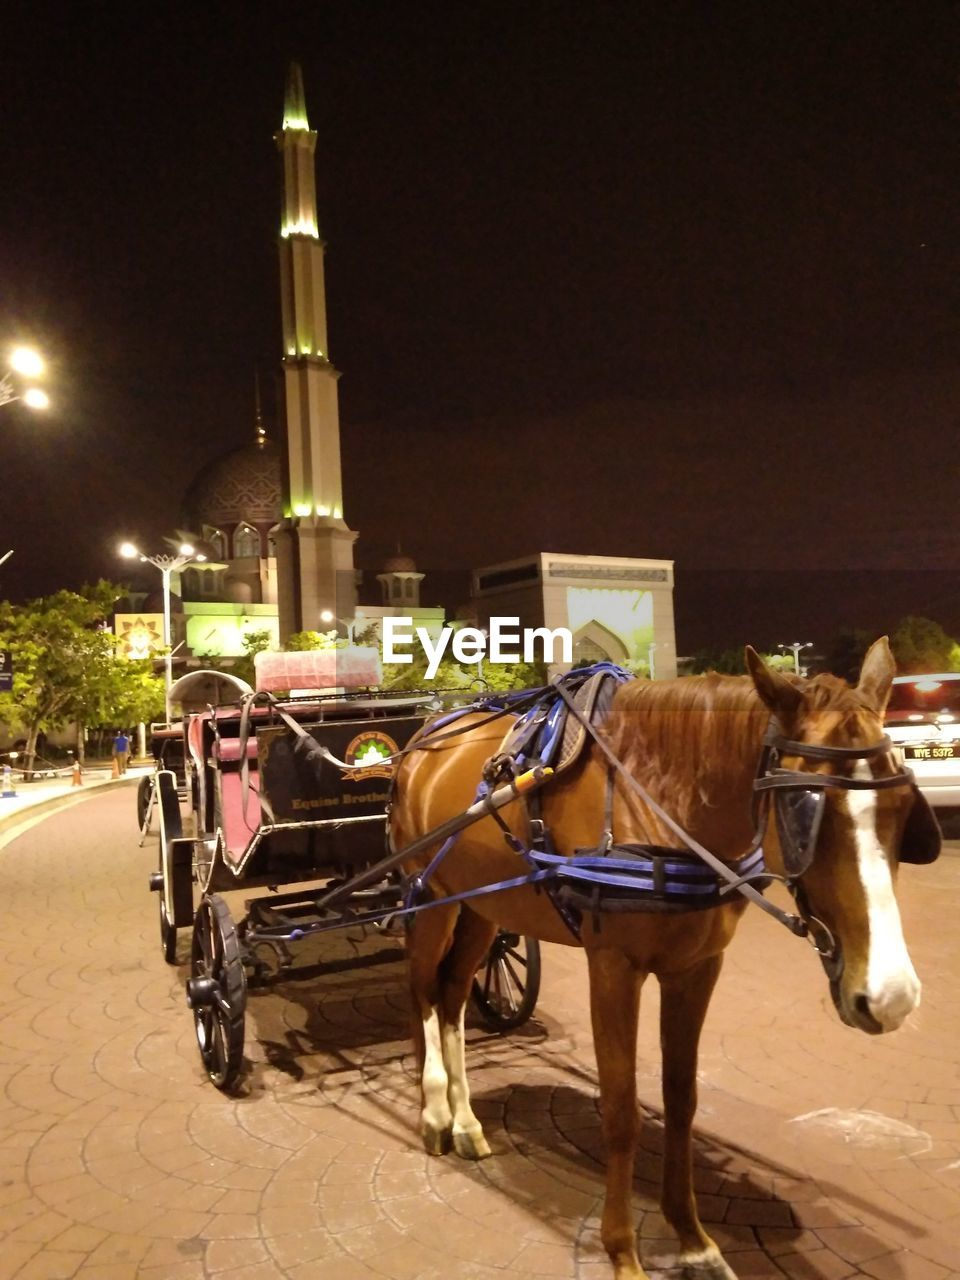 domestic animals, horse, working animal, animal themes, mammal, night, horse cart, illuminated, two animals, horsedrawn, built structure, mode of transport, transportation, building exterior, outdoors, architecture, sky, no people